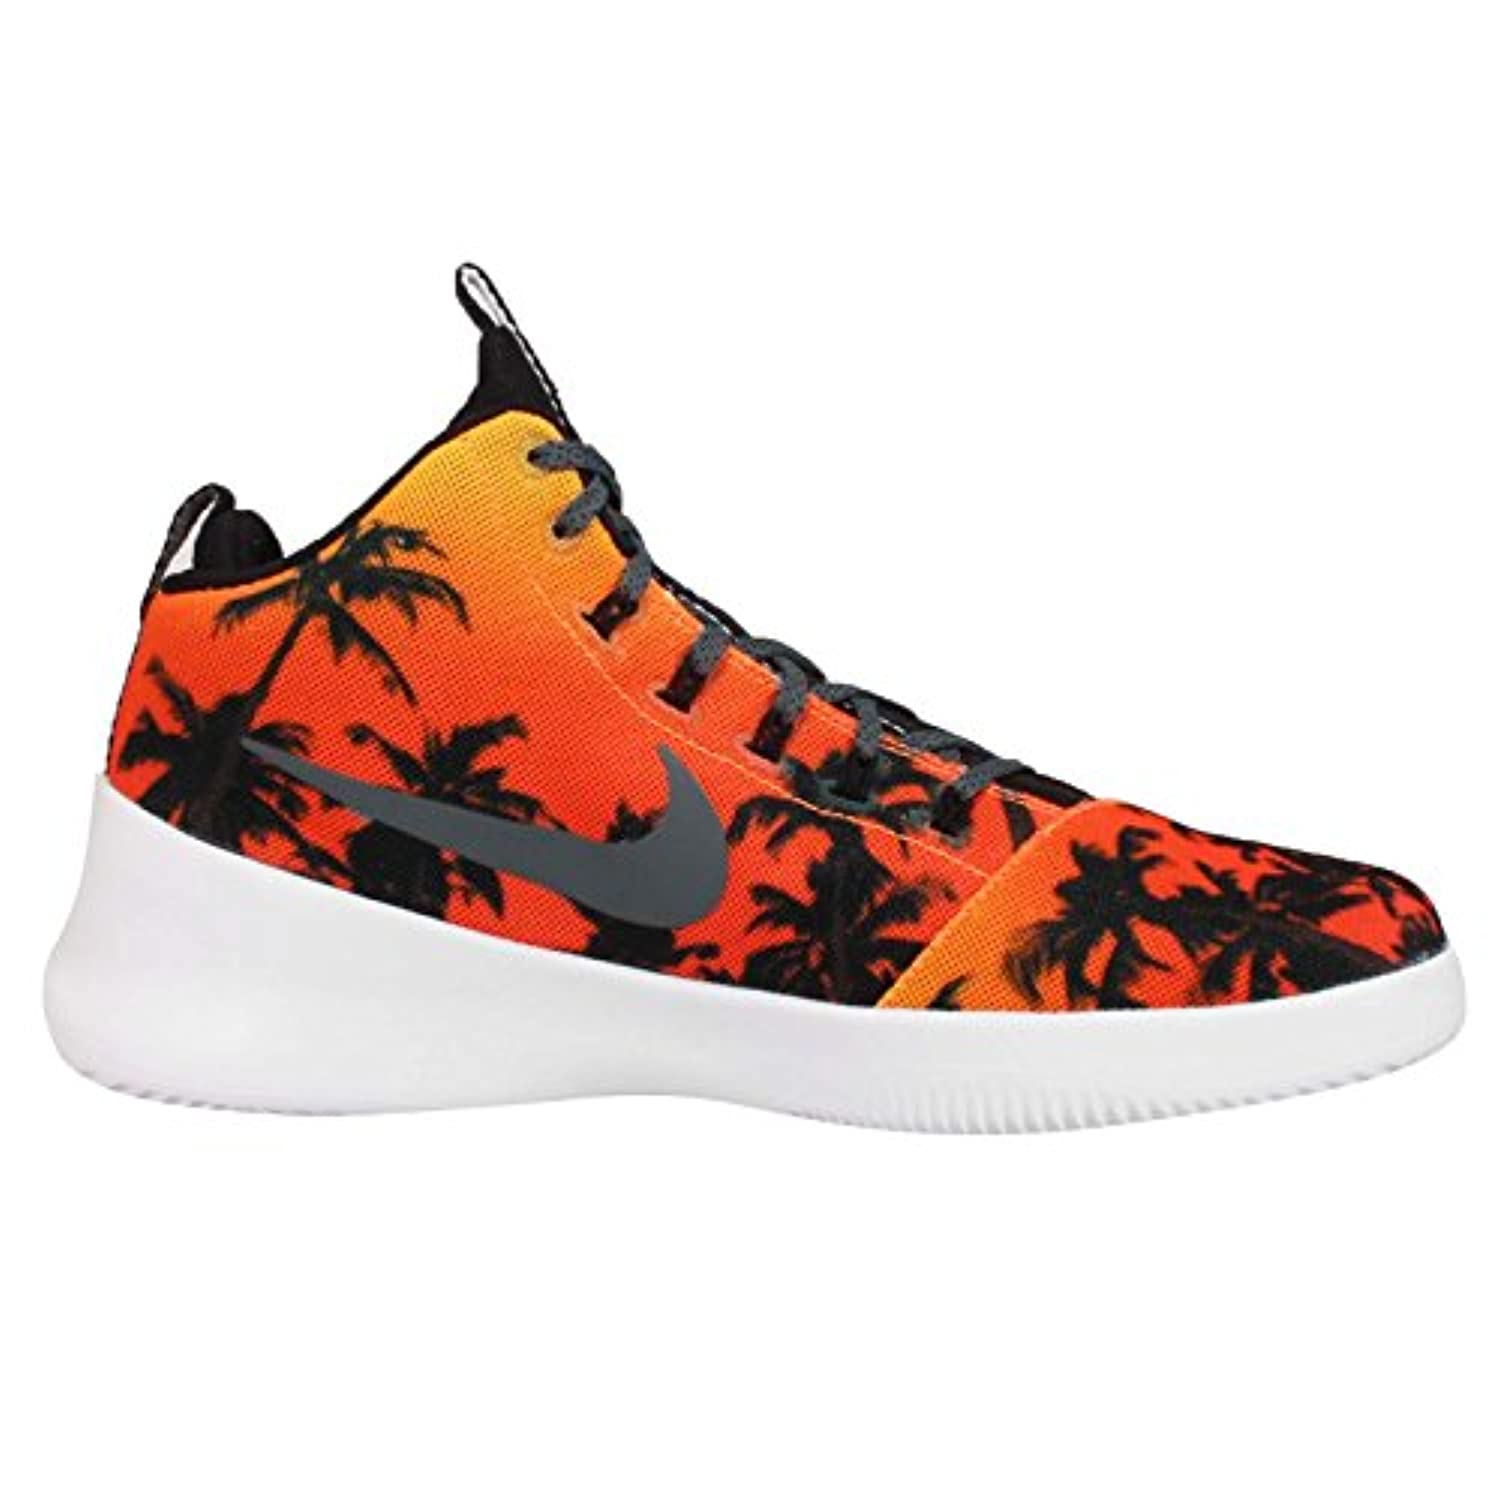 designer fashion c0358 1a0dc ... Nike Mens Hyperfr3sh QS Hyperfresh Laser Orange Dark Grey Fabric Size  11 ...